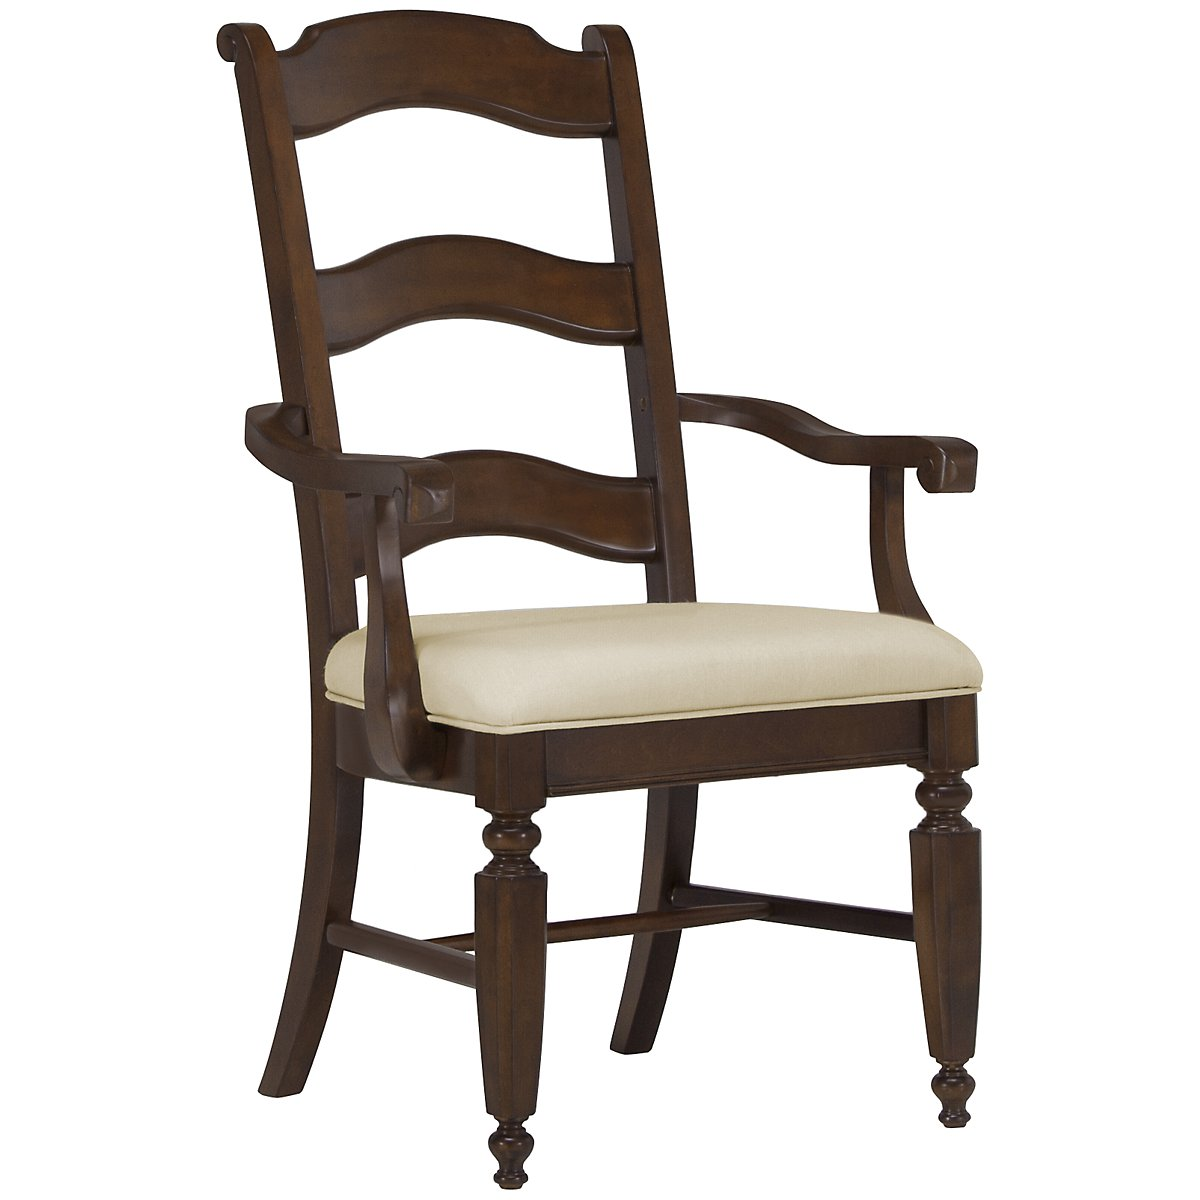 Claire Dark Tone Wood Arm Chair